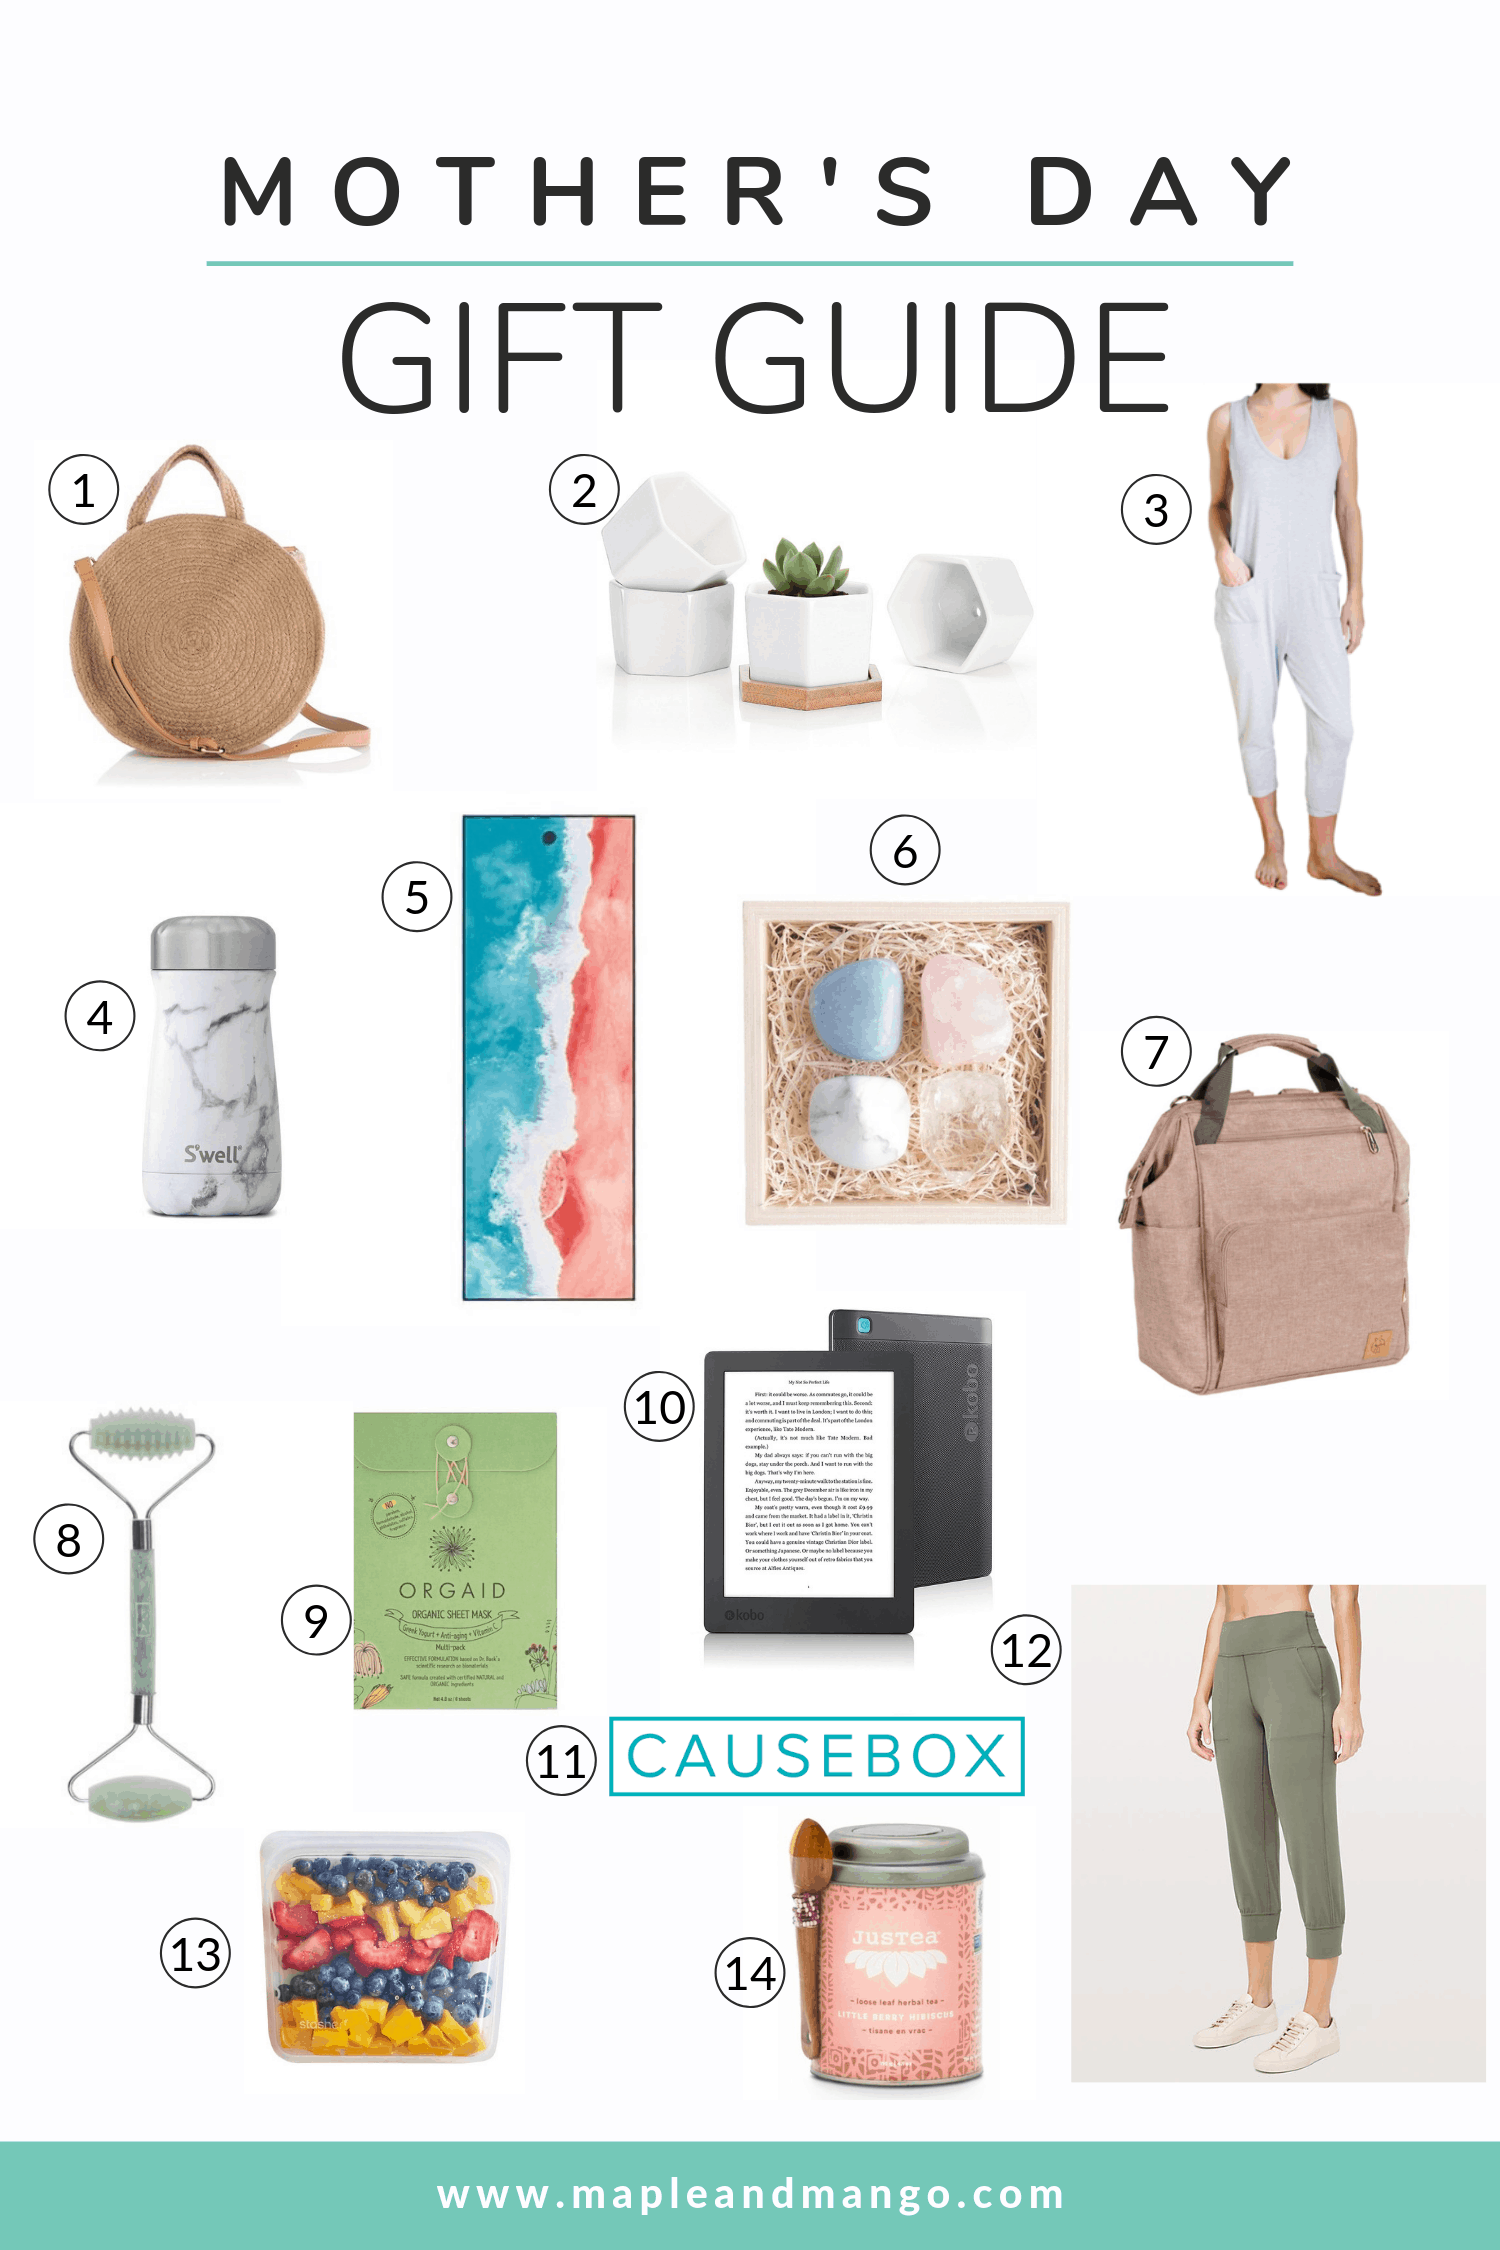 a variety of images of gift ideas for Mother's Day